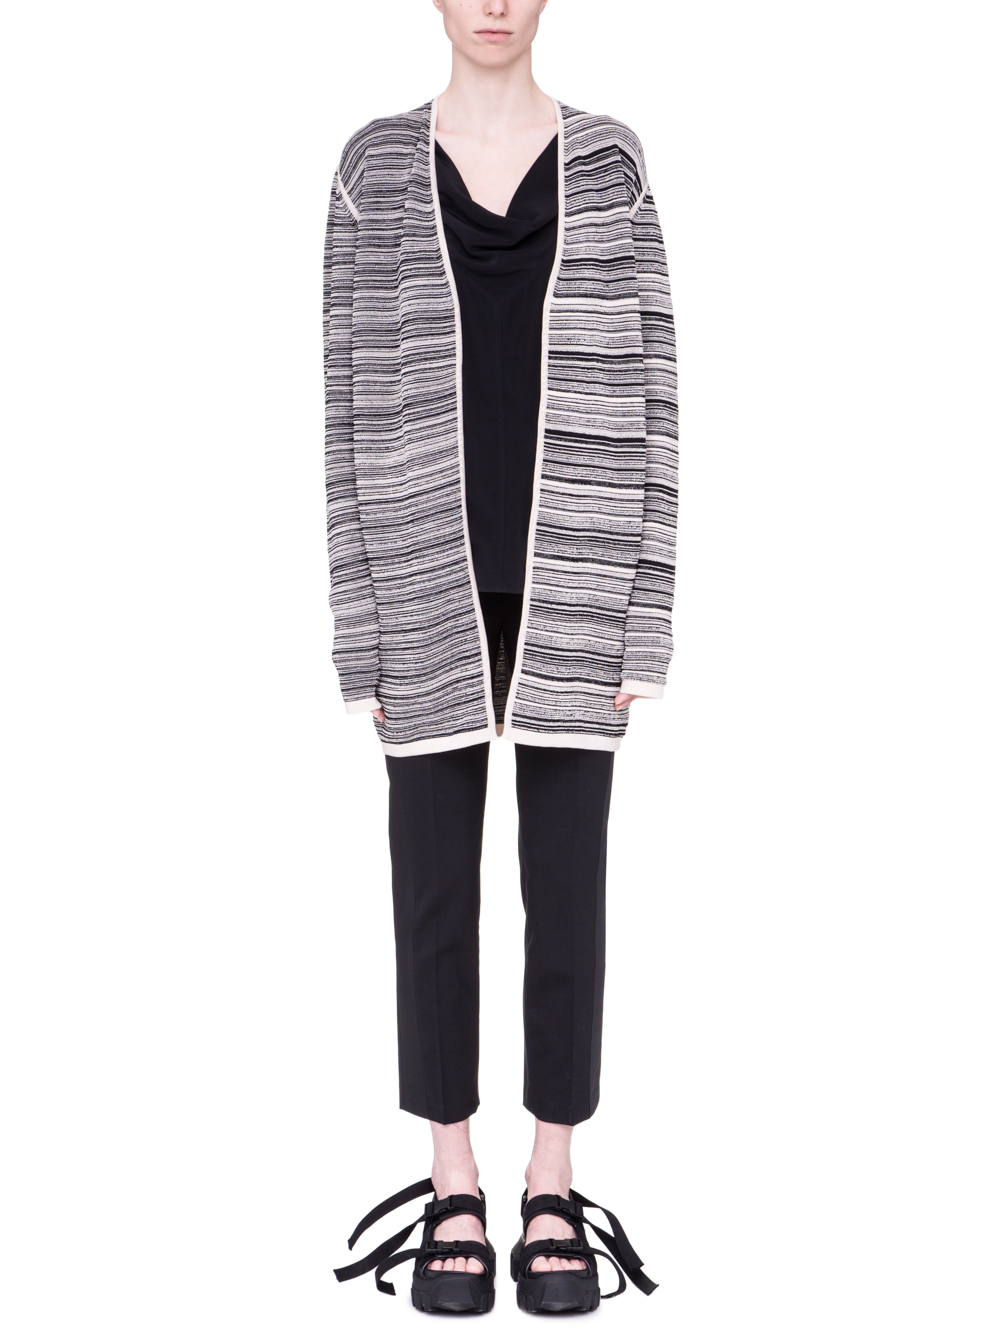 RICK OWENS SS19 BABEL DIRT CARDIGAN IN BLACK AND NATURAL BEIGE